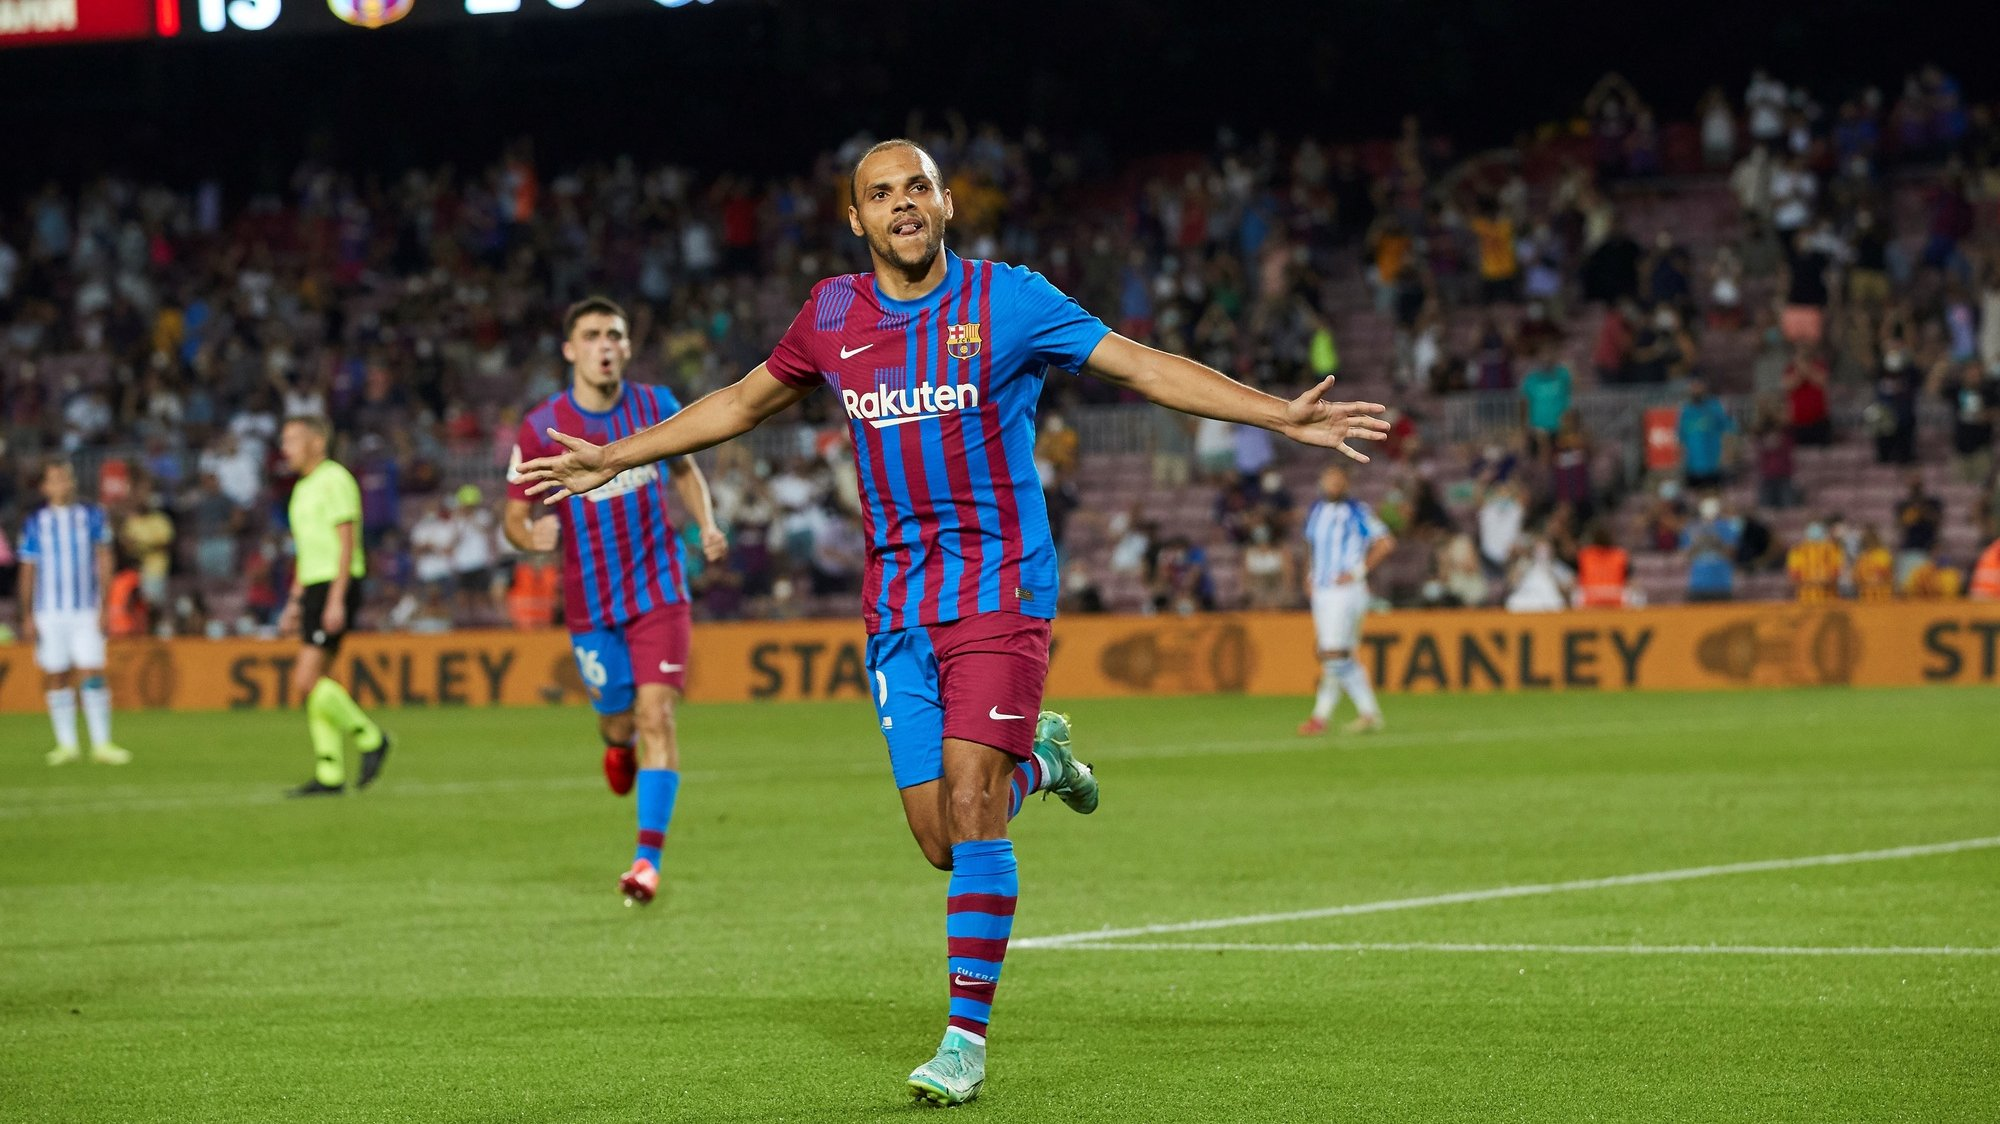 epa09415775 FC Barcelona's Martin Braithwaite celebrates after scoring the 3-0 lead during a Spanish LaLiga soccer match between FC Barcelona and Real Sociedad at Camp Nou in Barcelona, Spain, 15 August 2021.  EPA/Alejandro Garcia